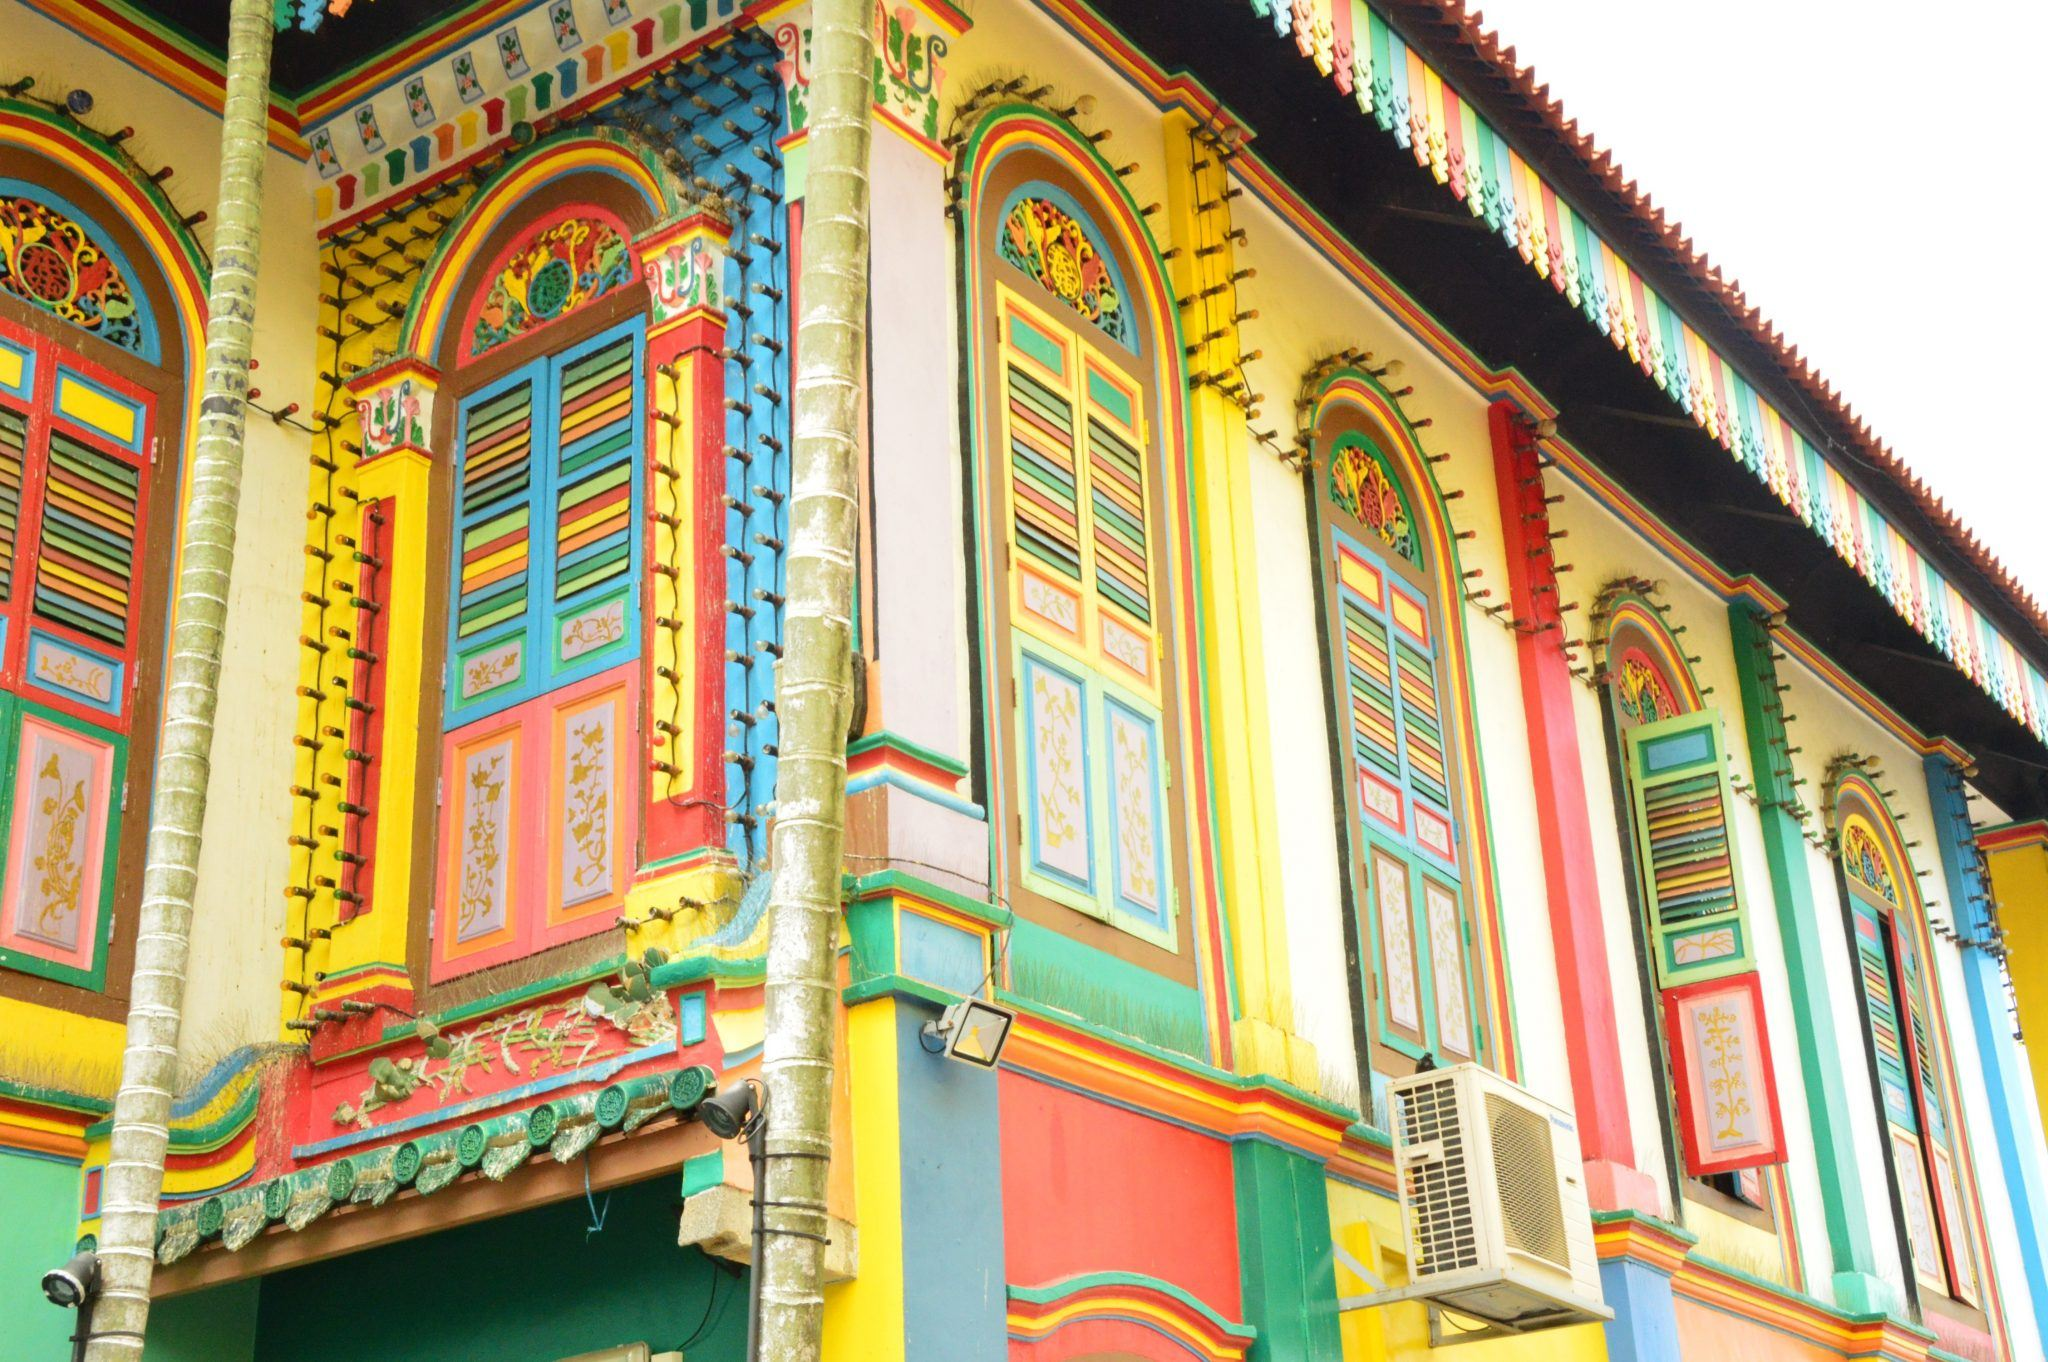 Tan House Little India - a great thing to do if you have one day in singapore